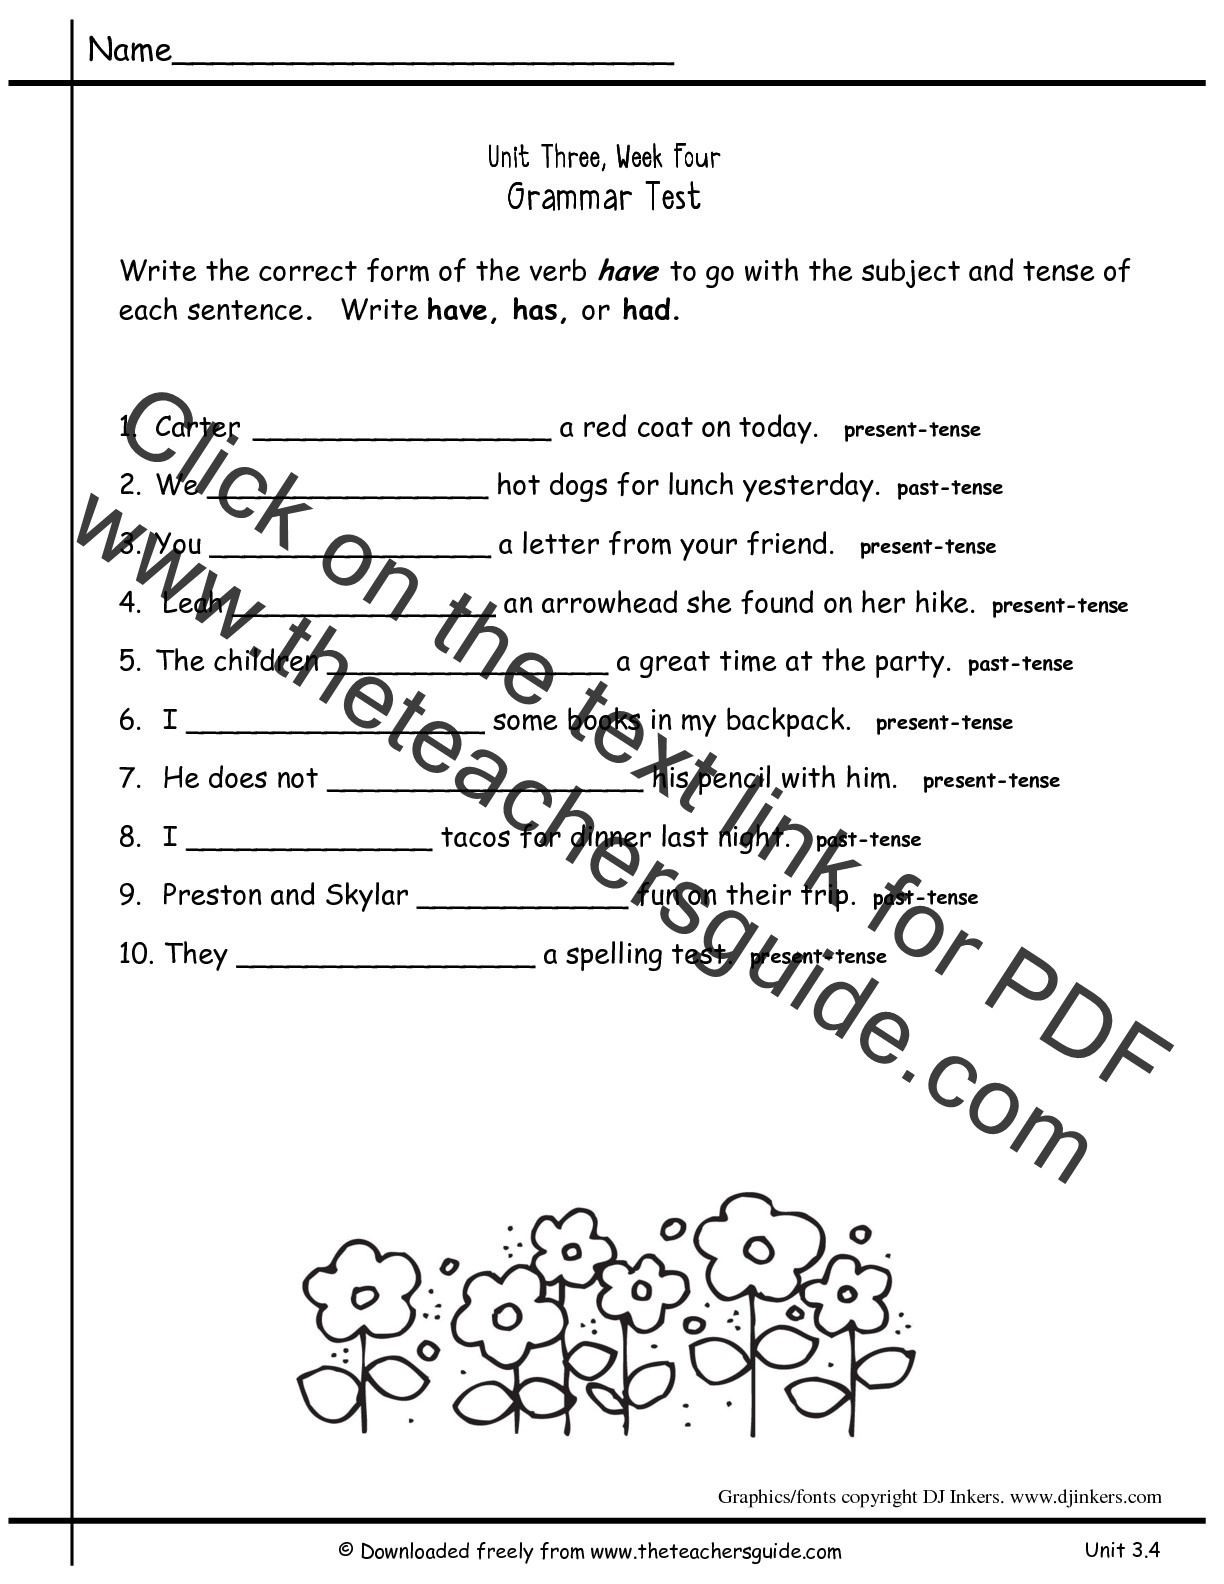 Printables Grammar Worksheets For 2nd Grade grammar worksheets for 2nd grade free scalien wonders second unit three week four printouts